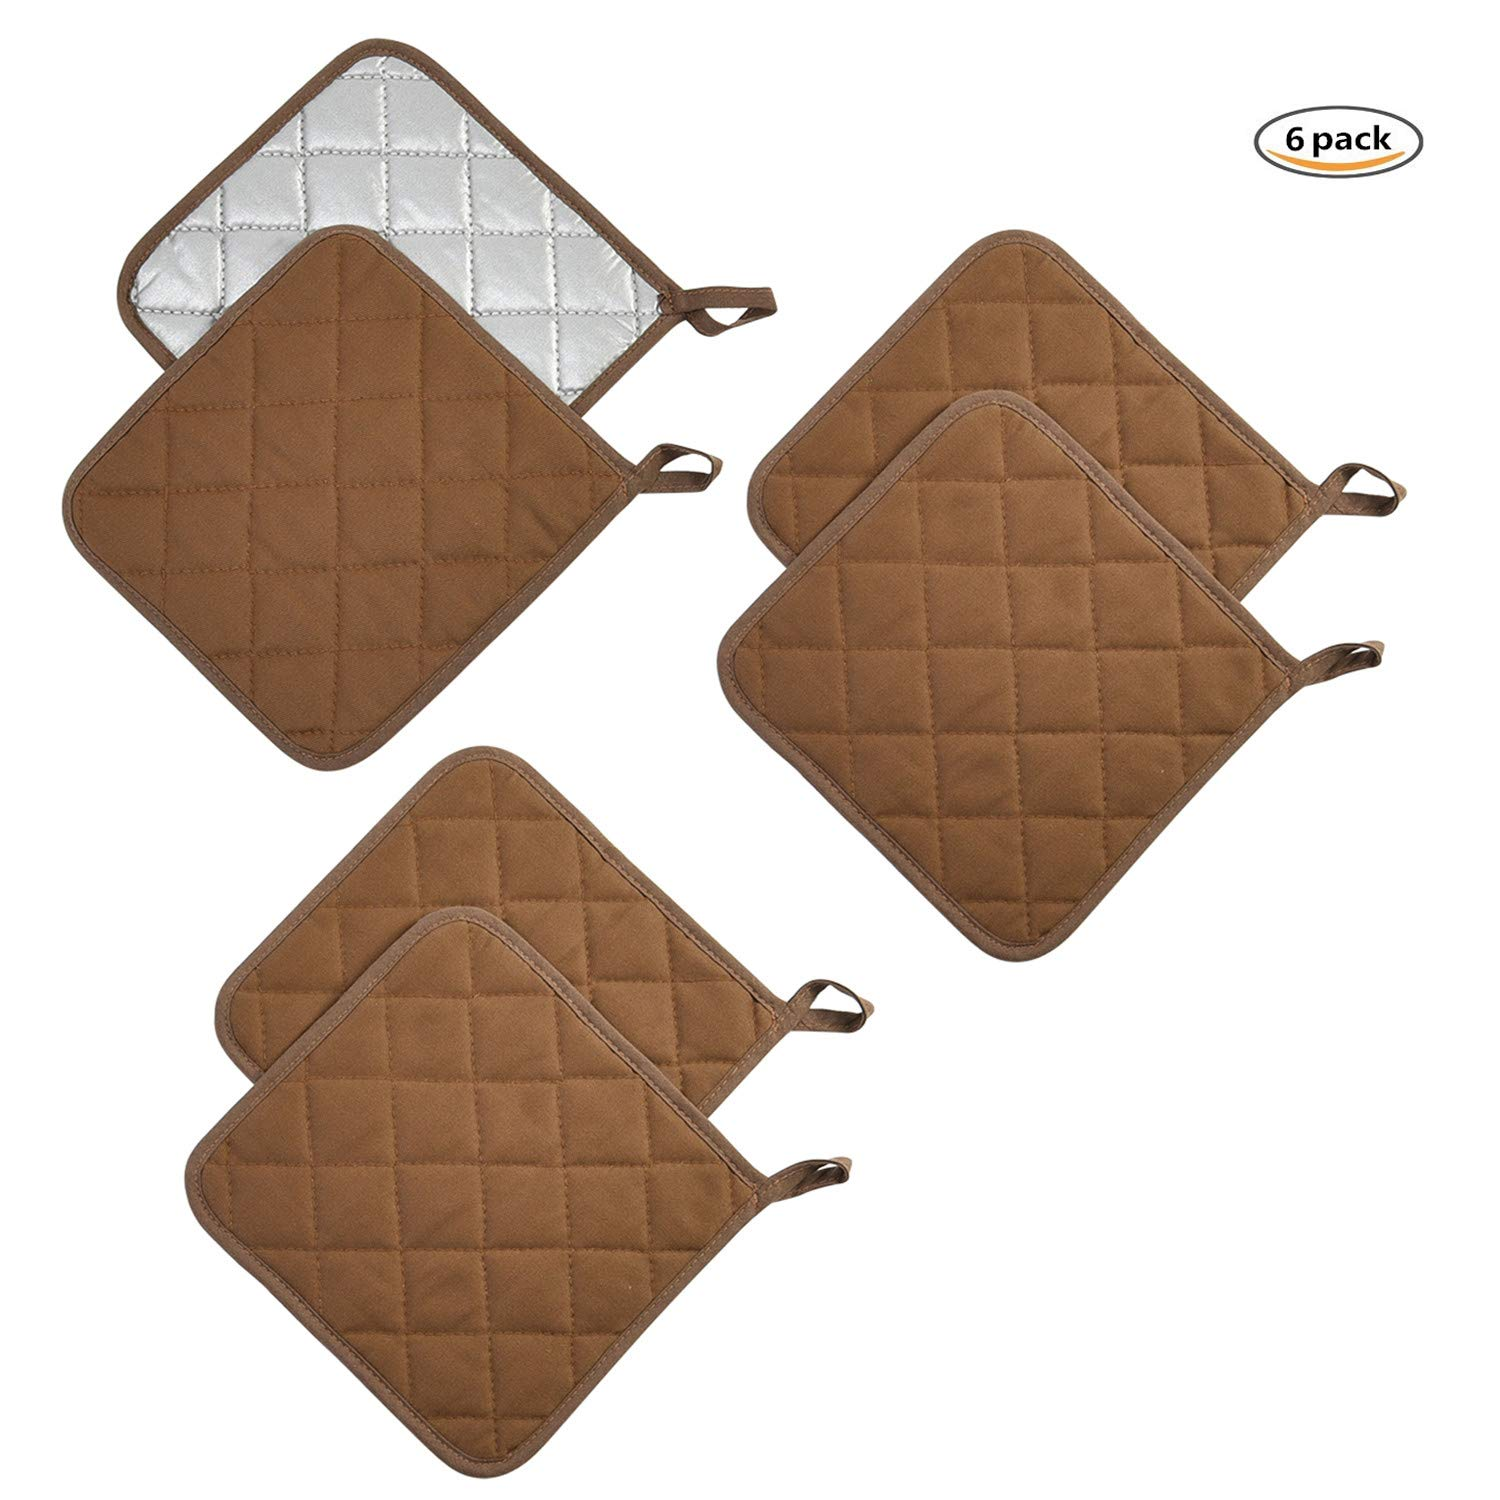 Jennice House Potholders Set Trivets Kitchen Heat Resistant Pure Cotton Coasters Hot Pads Pot Holders Set of 6 for Everyday Cooking And Baking by 7 x 7 Inch (Brown)